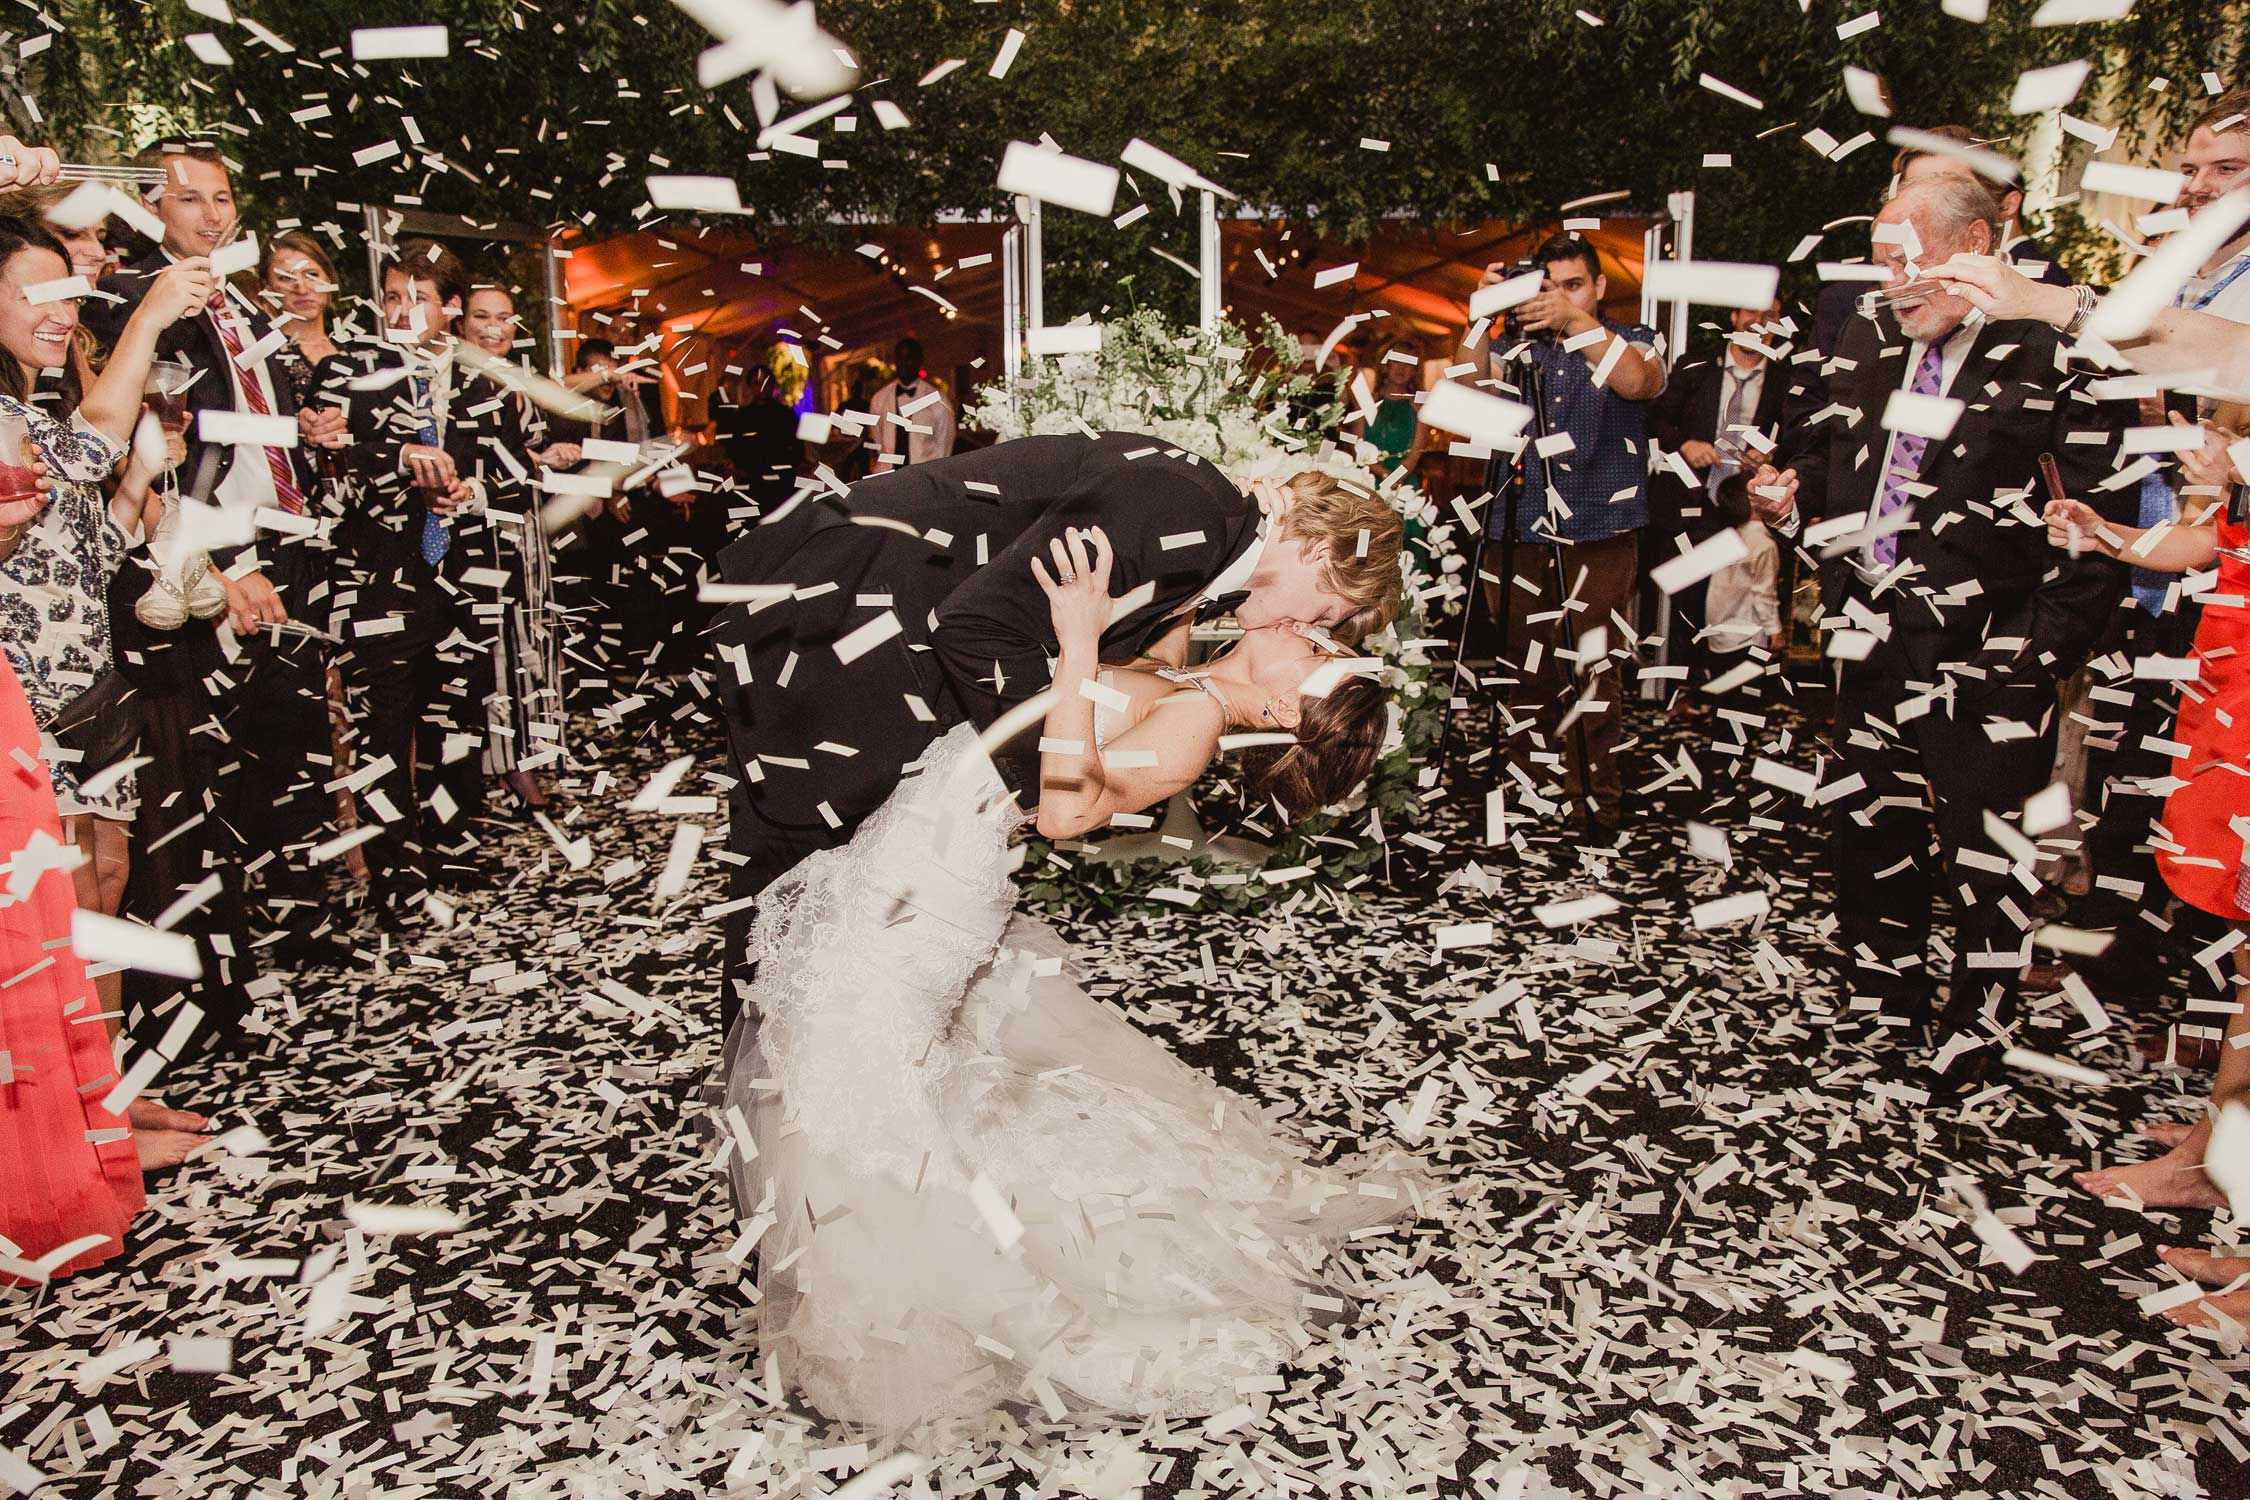 confetti cannon shoots off during newlyweds' first dance